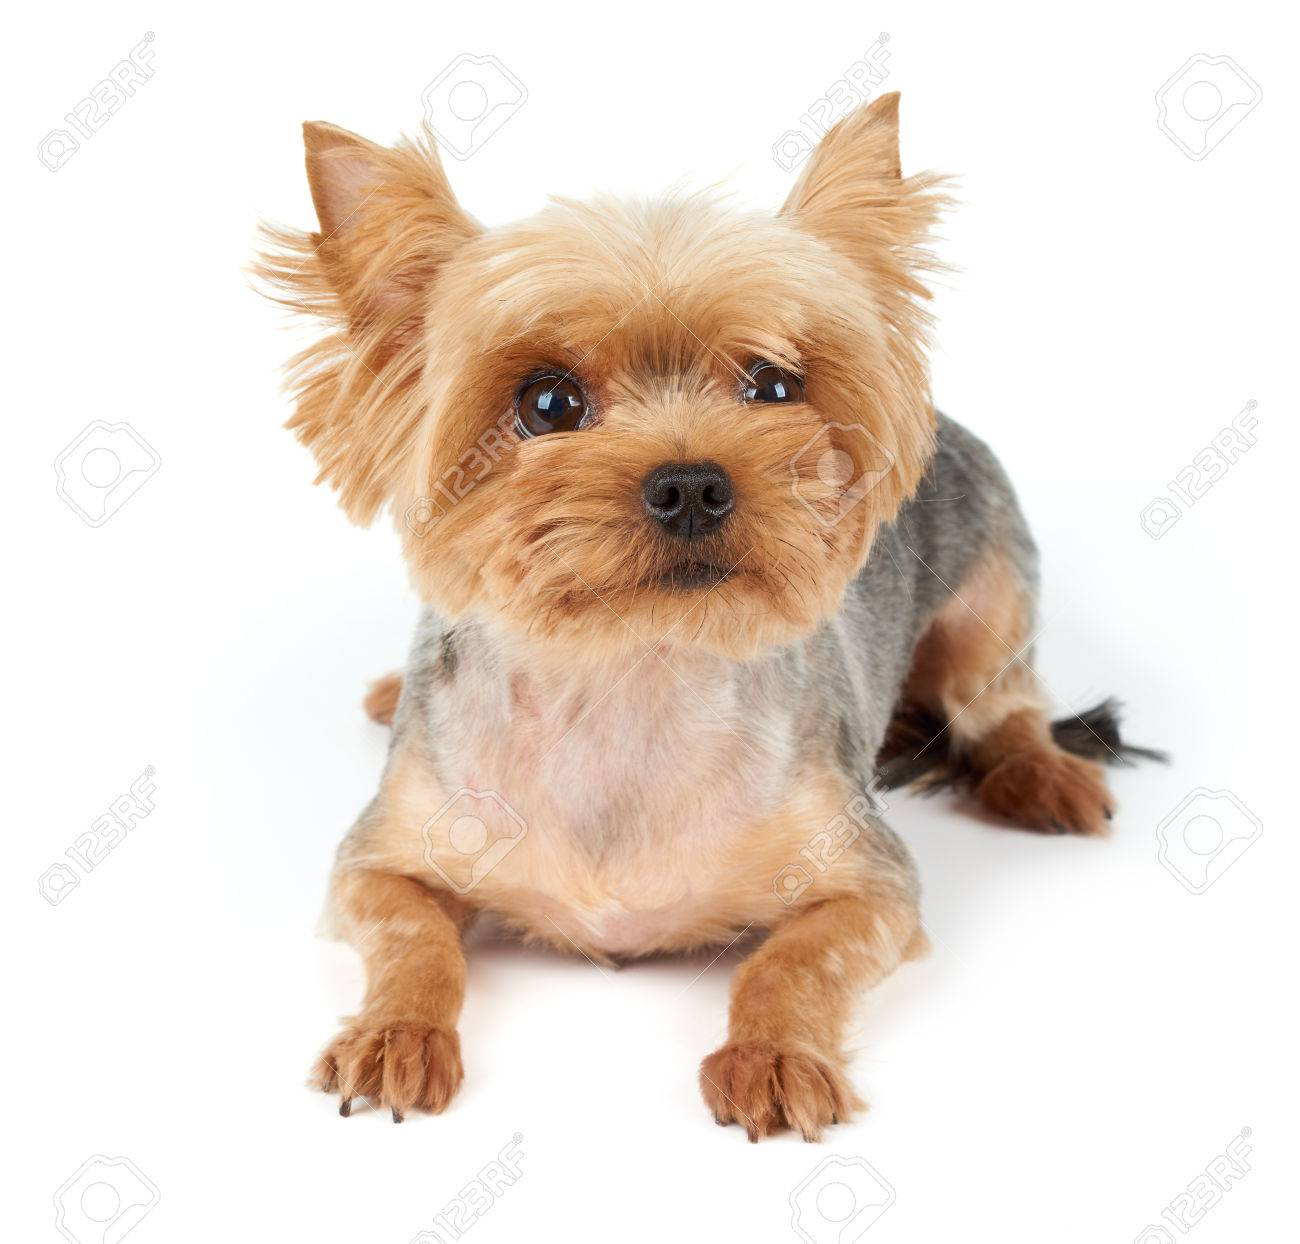 Yorkshire Terrier With Large Eyes And Short Haircut Isolated Stock Photo Picture And Royalty Free Image Image 41193488